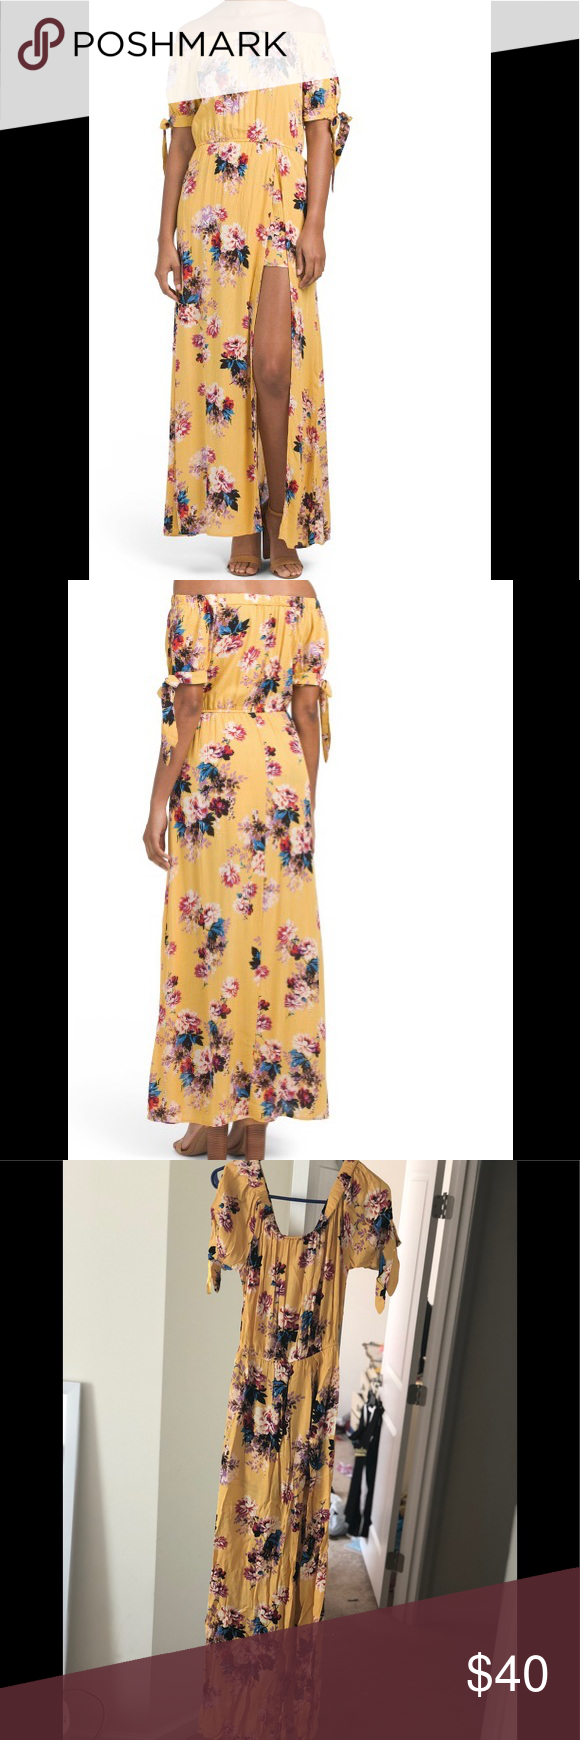 Juniors yellow off the shoulder floral maxiromper nwt in my